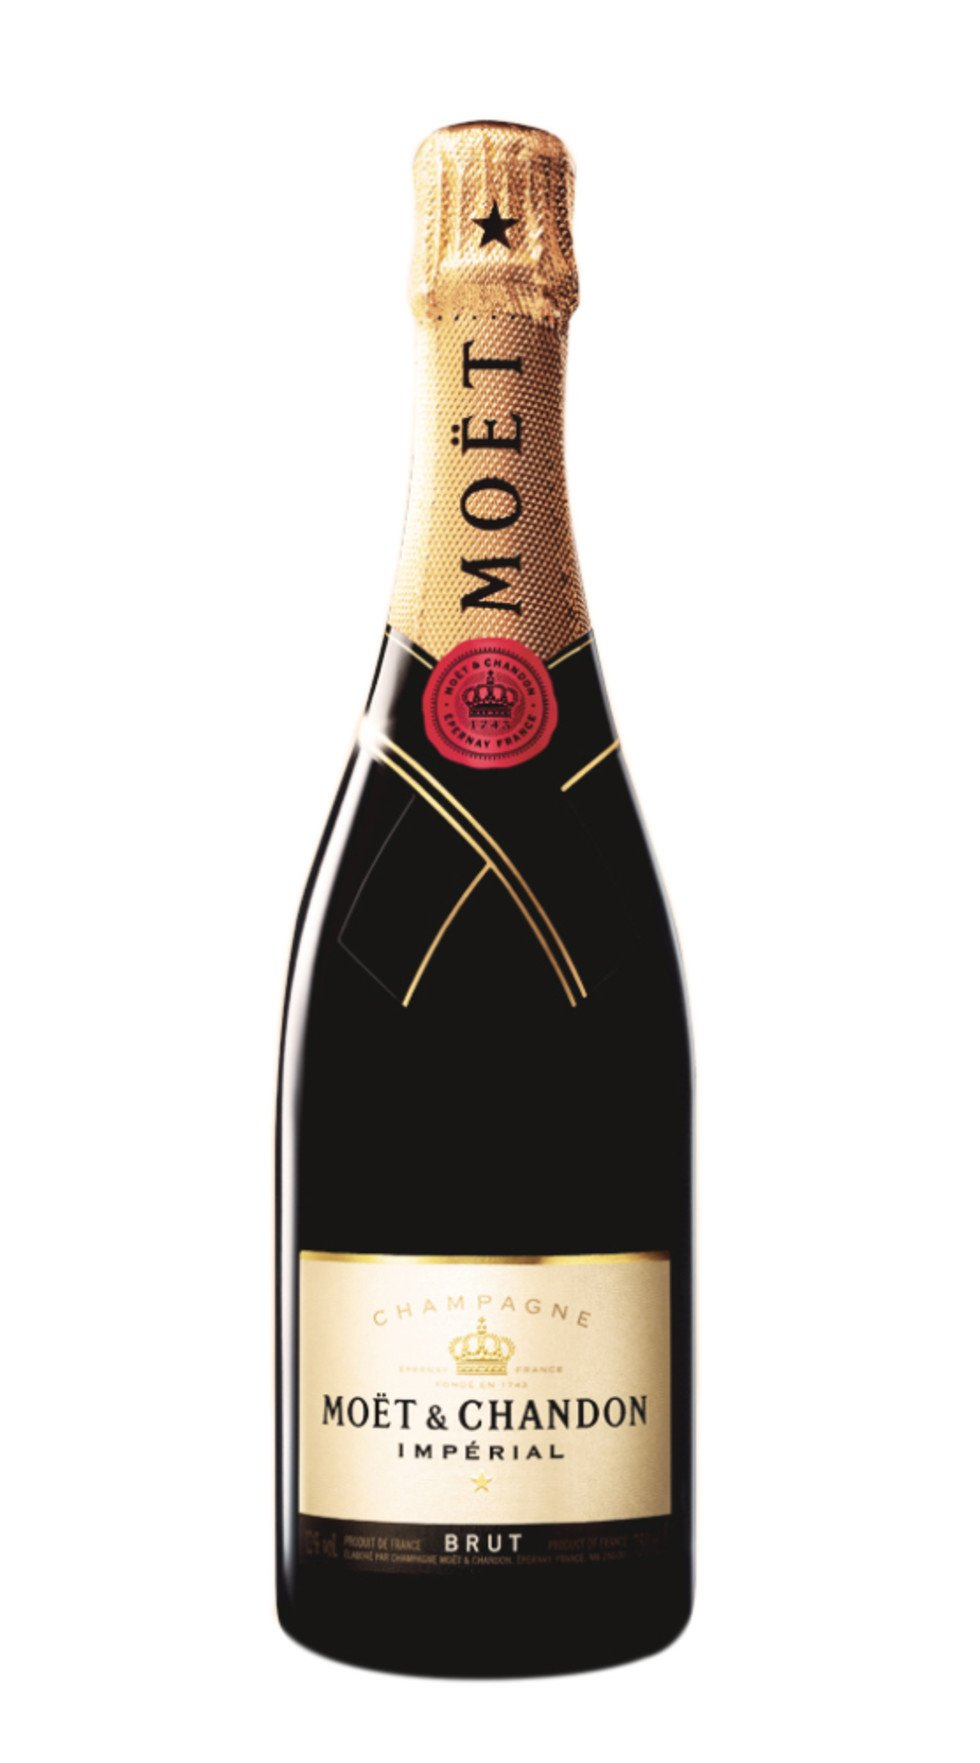 aga>Brut Champagne Moet & Chandon Imperial 0,75ml